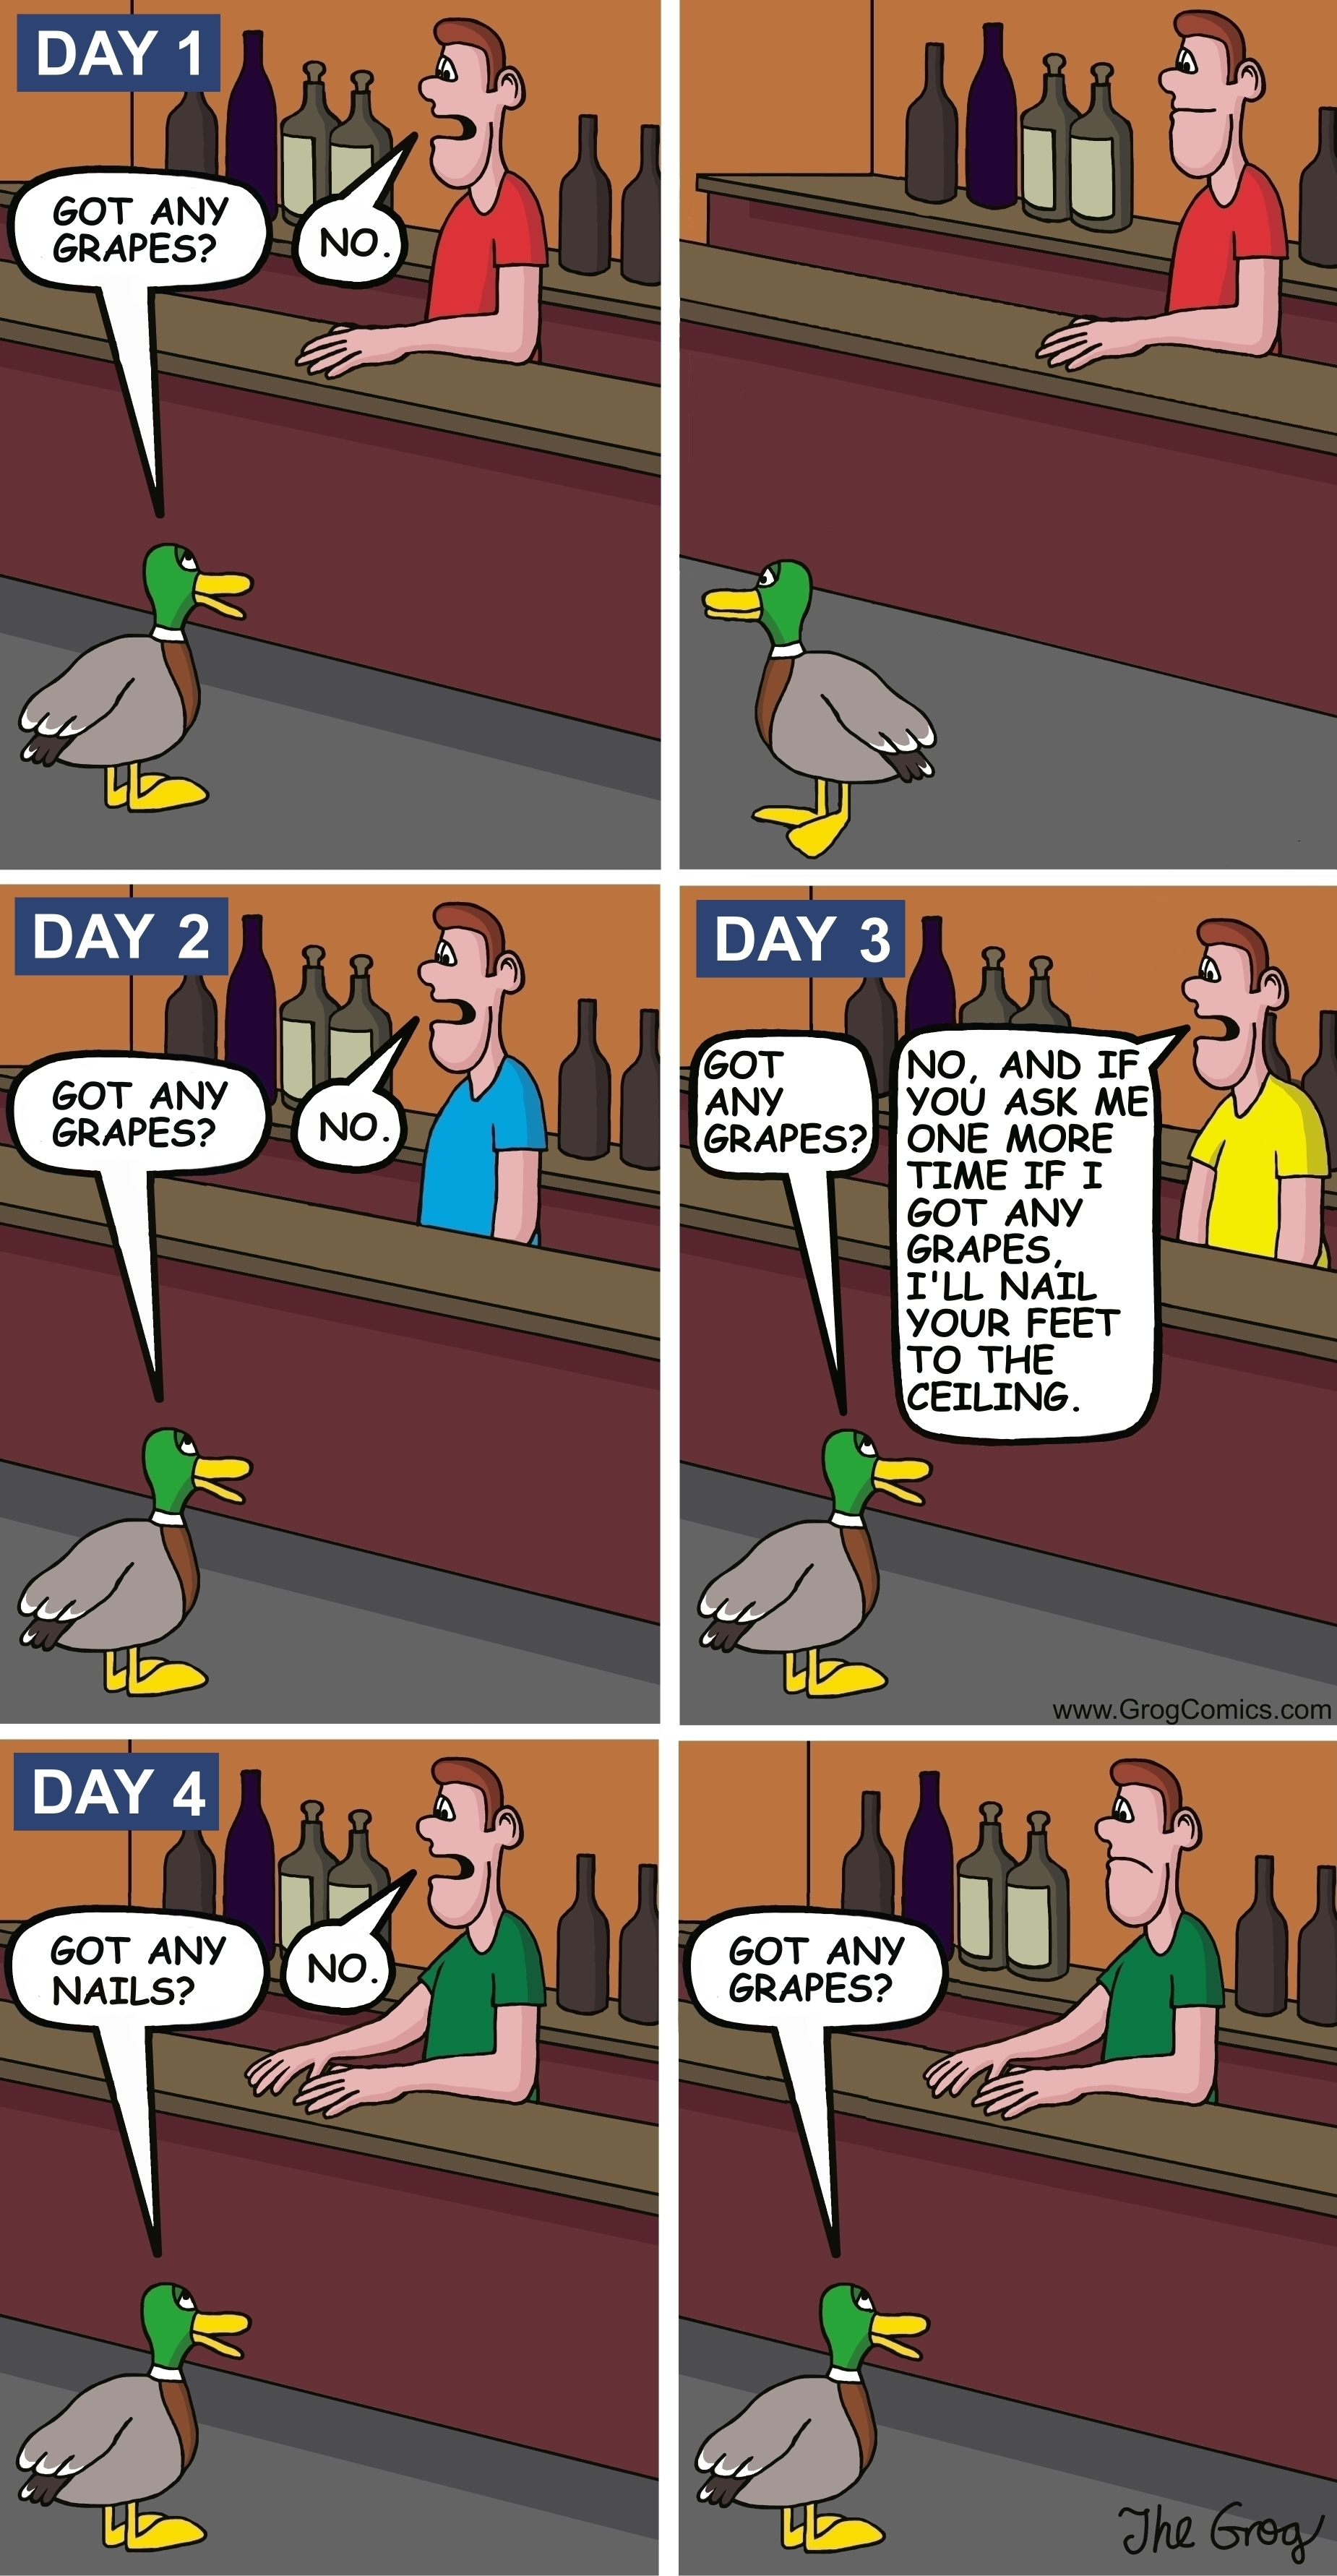 "A duck walks into a bar. ""Got any grapes?"", says the duck to the bartender. ""No"", replies the bartender. The duck leaves. The next day, the same duck walks into the bar. ""Got any grapes?"", says the duck to the same bartender. ""No"", says the bartender. The duck leaves. On the third day, the same duck walks into the bar. ""Got any grapes?"", asks the duck. The bartender says angrily, ""No, and if you ask me one more time if I got any grapes, I'll nail your feet to the ceiling."" The next day, the duck walks into the bar. ""Got any nails?"", asks the duck to the bartender. The bartender, says ""No."" The duck says, ""Got any grapes?"""